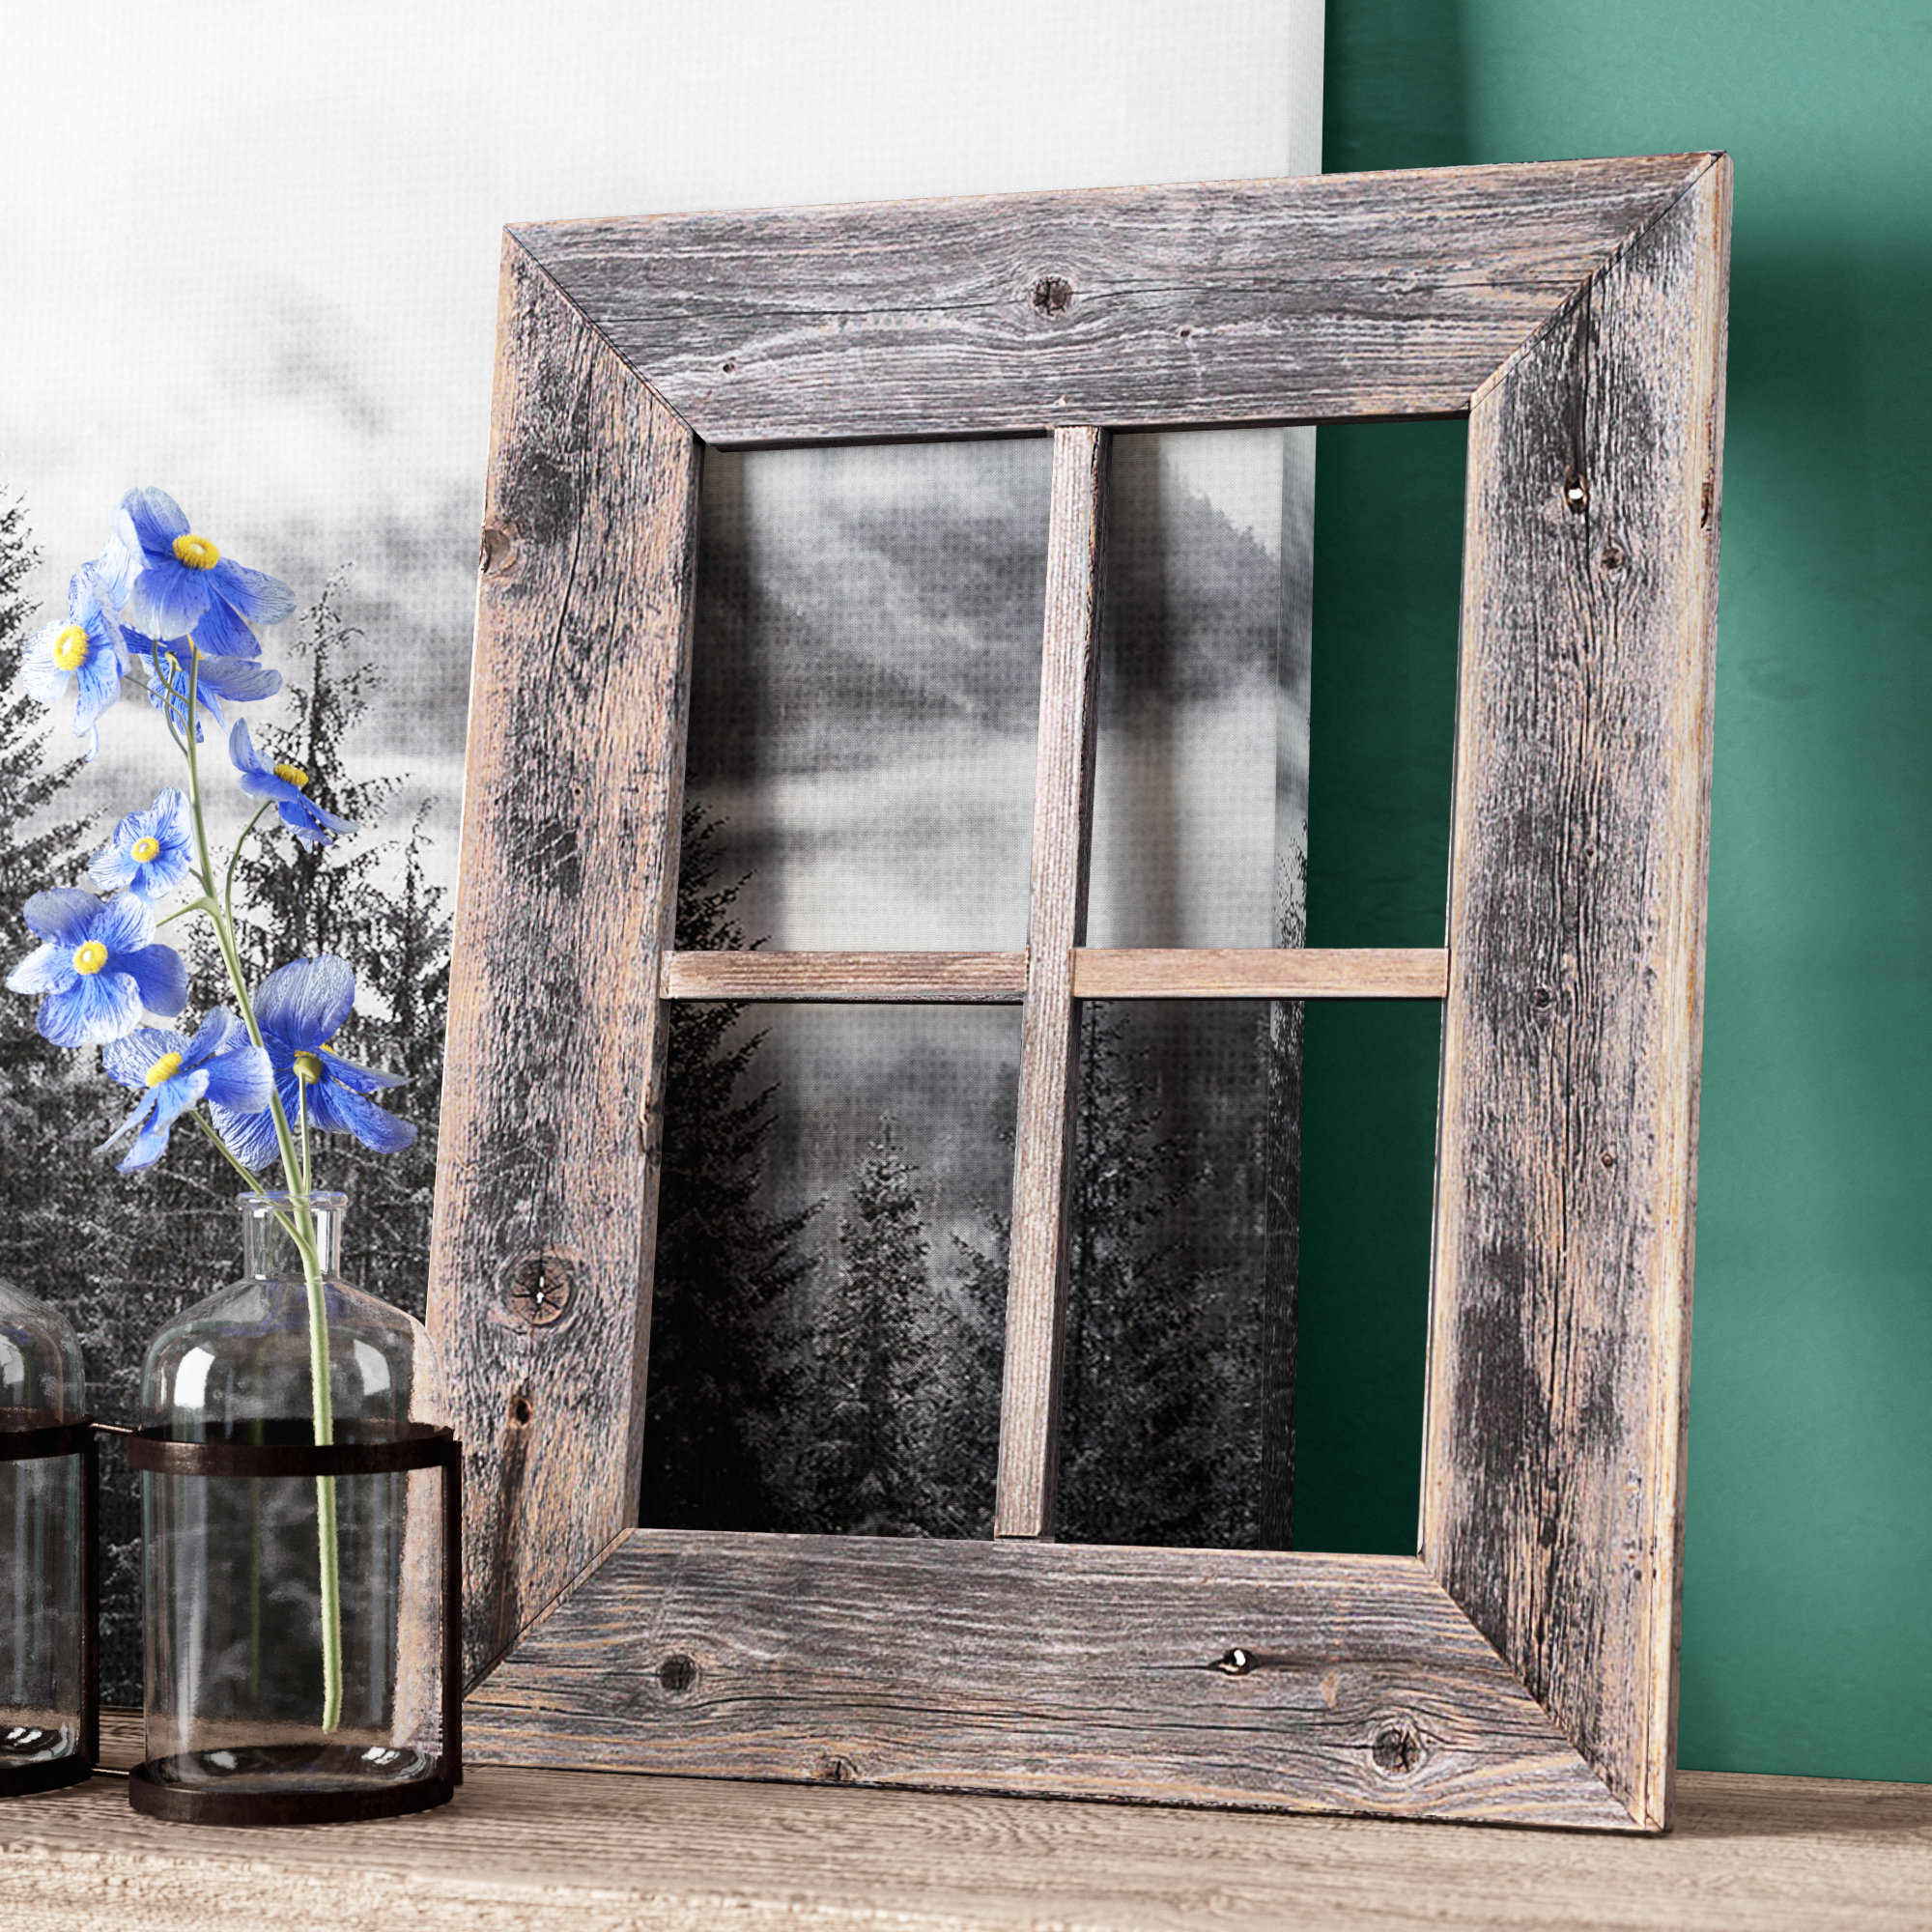 Featured Photo of Old Rustic Barn Window Frame